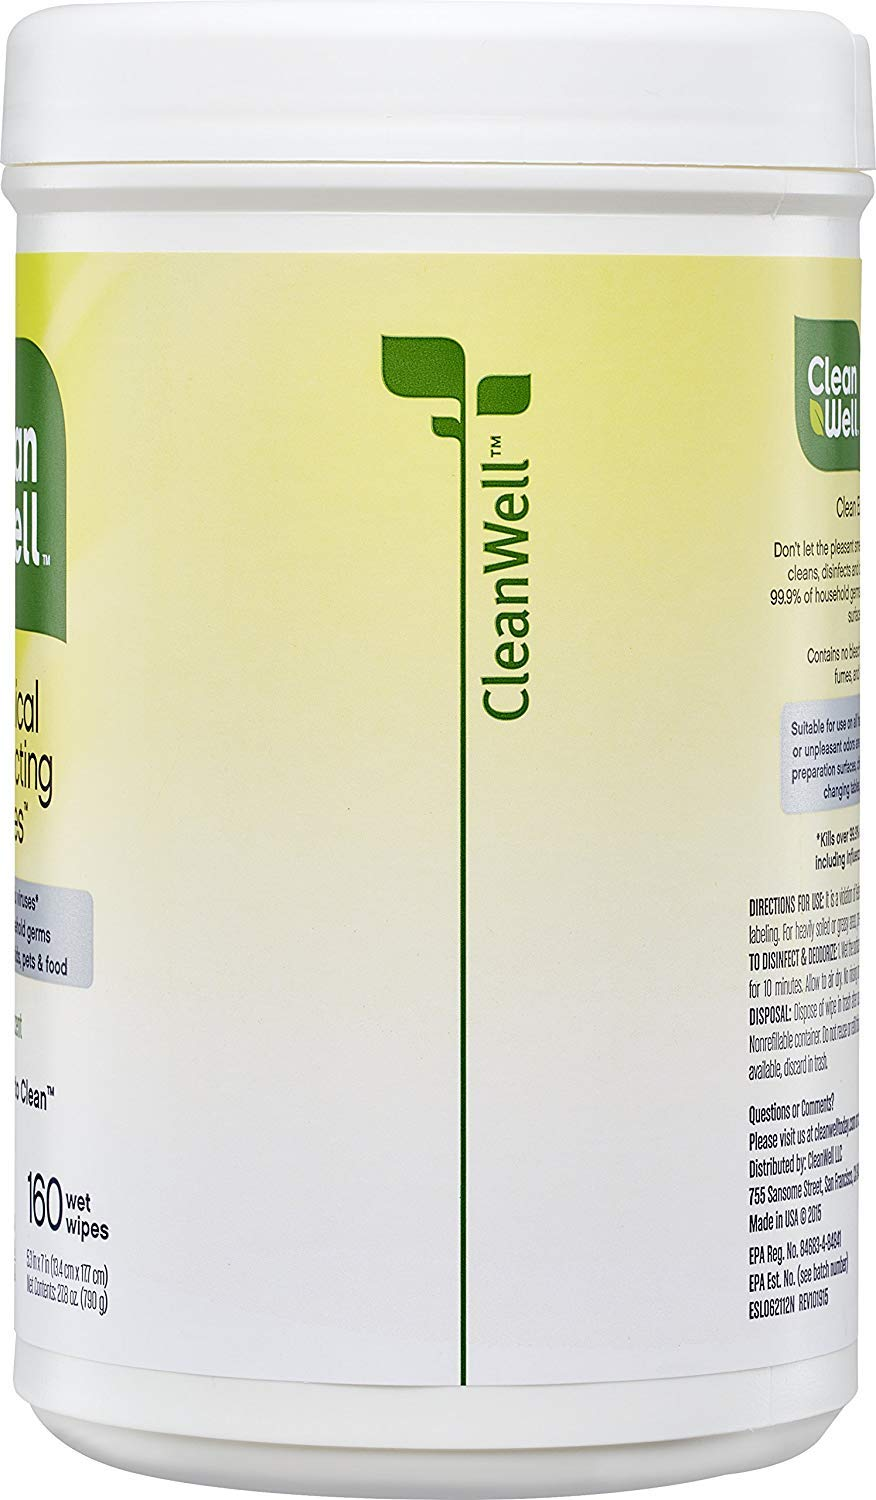 CleanWell Botanical Disinfecting Wipes - Lemon Scent, 160 Count by Cleanwell (Image #10)